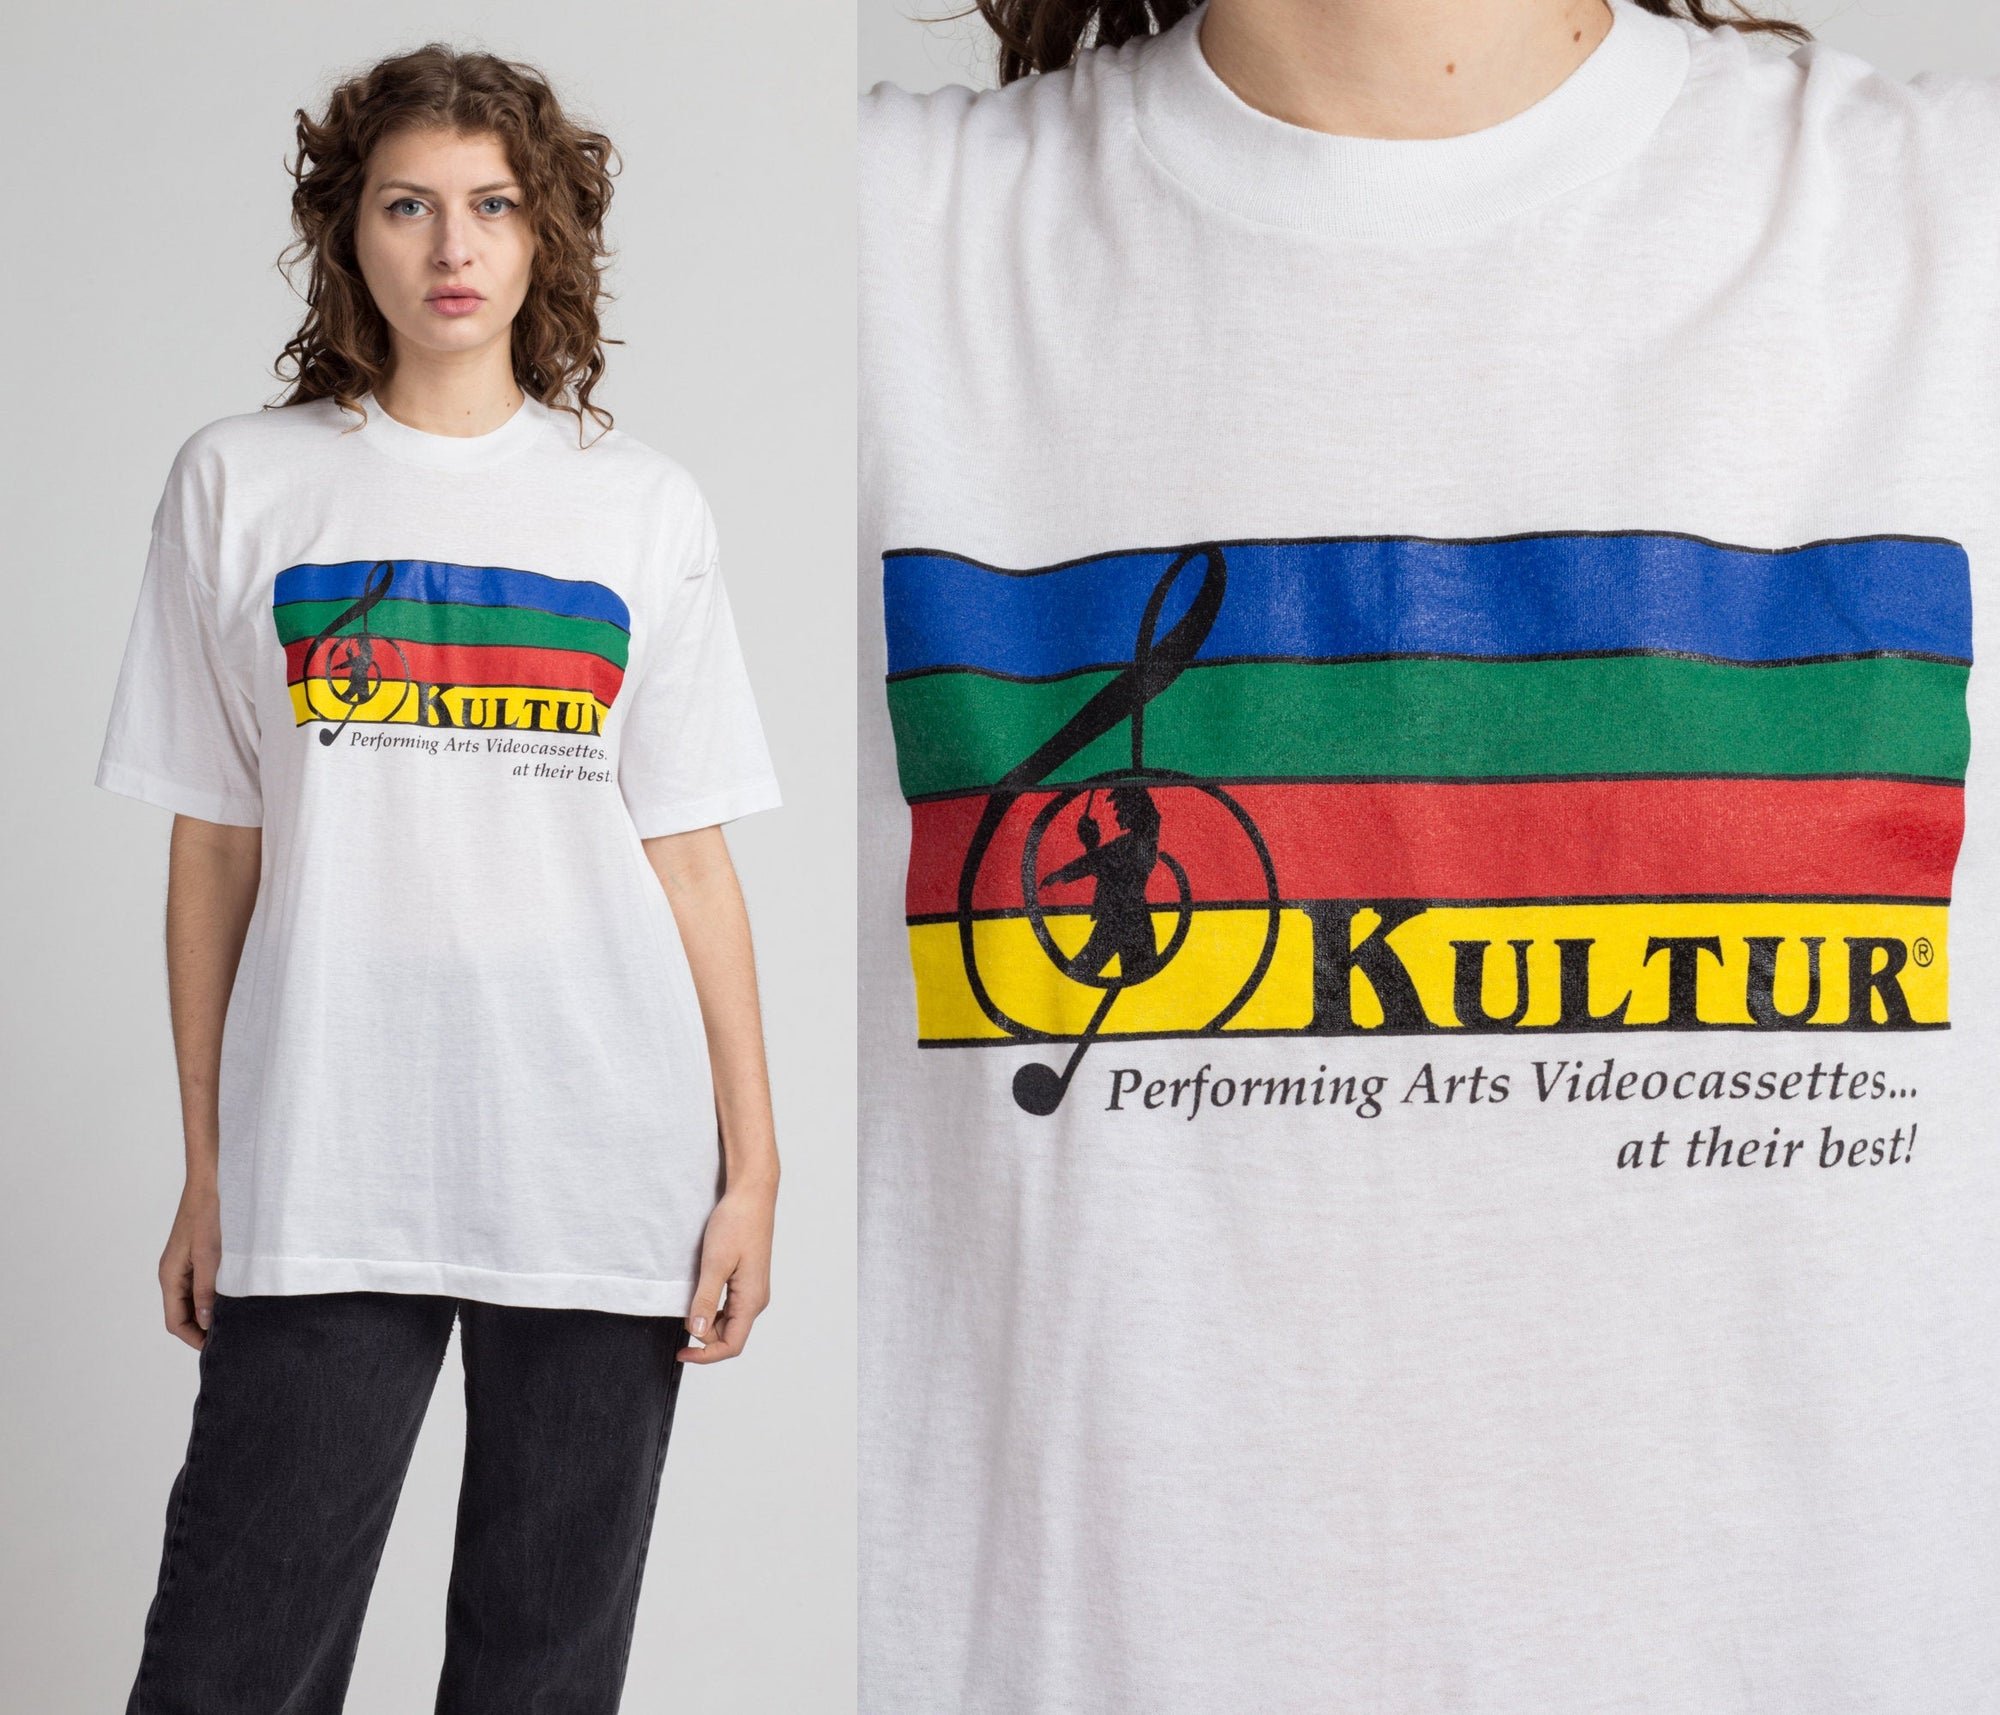 Vintage Kultur VHS Tapes T Shirt - Men's Large | 90s White Music Cleft Graphic Performing Arts Tee